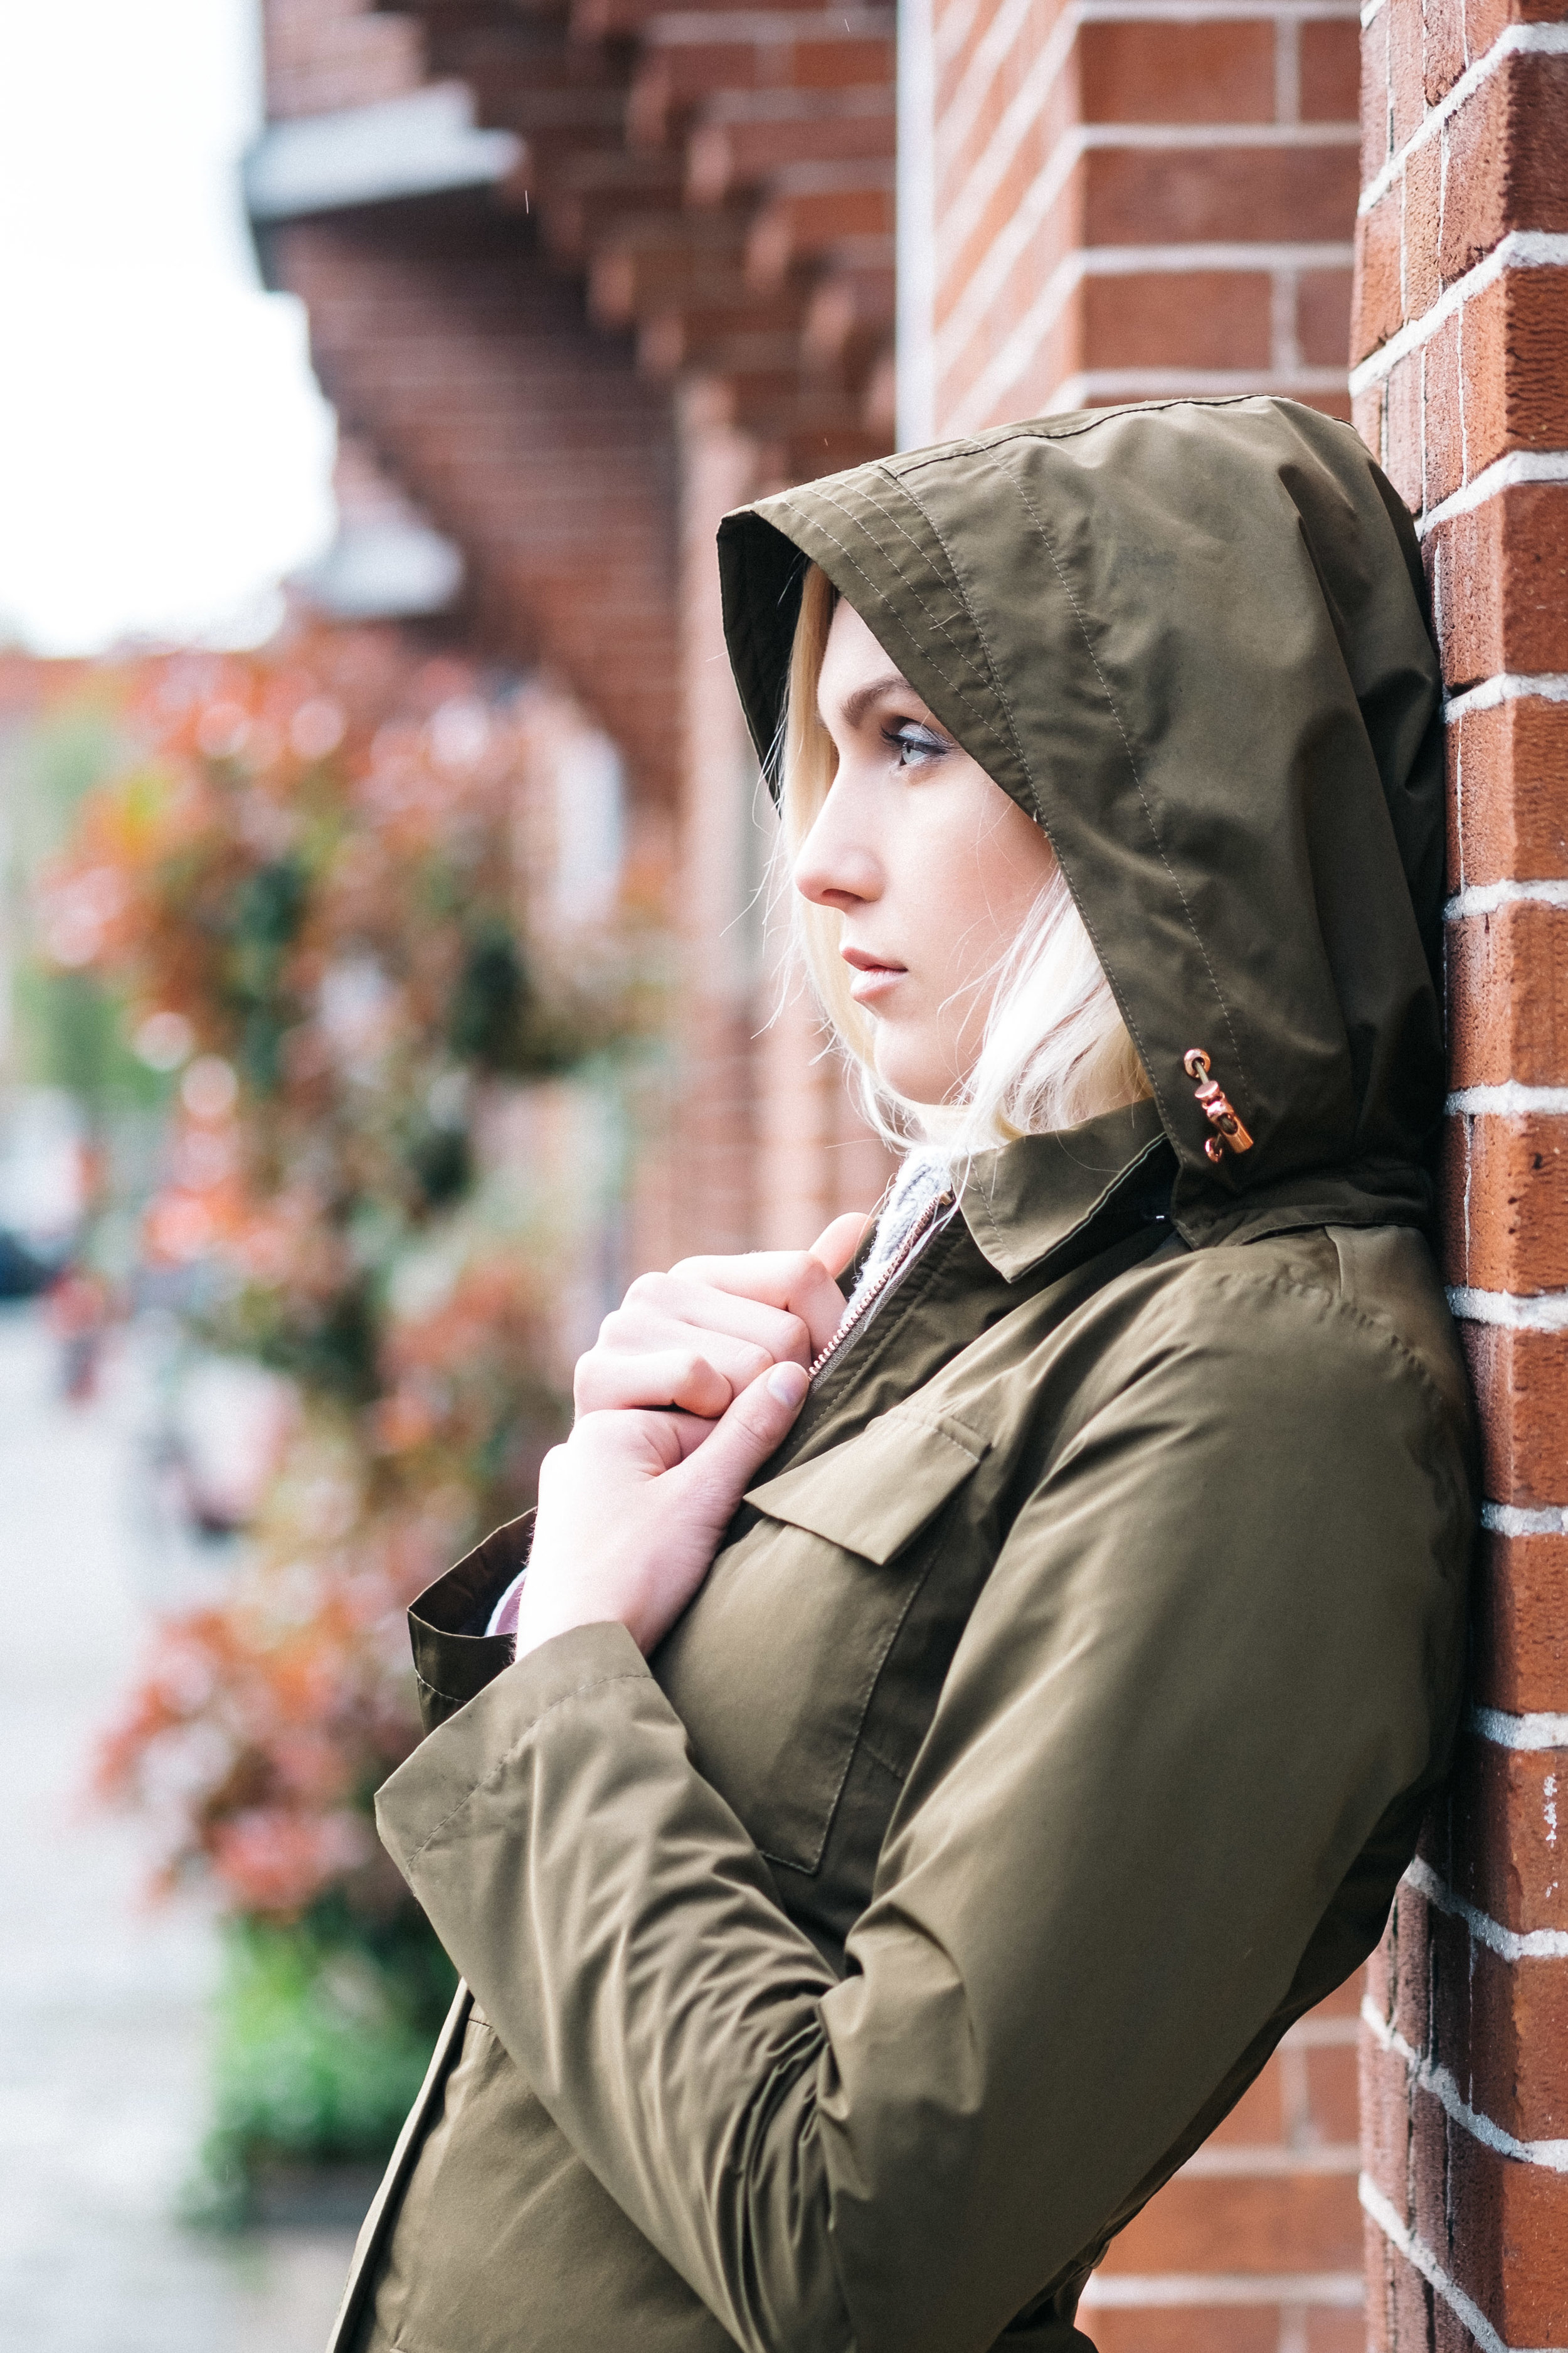 Rain Couture (2 of 22) - Copyright Jan Arsenovic.jpg